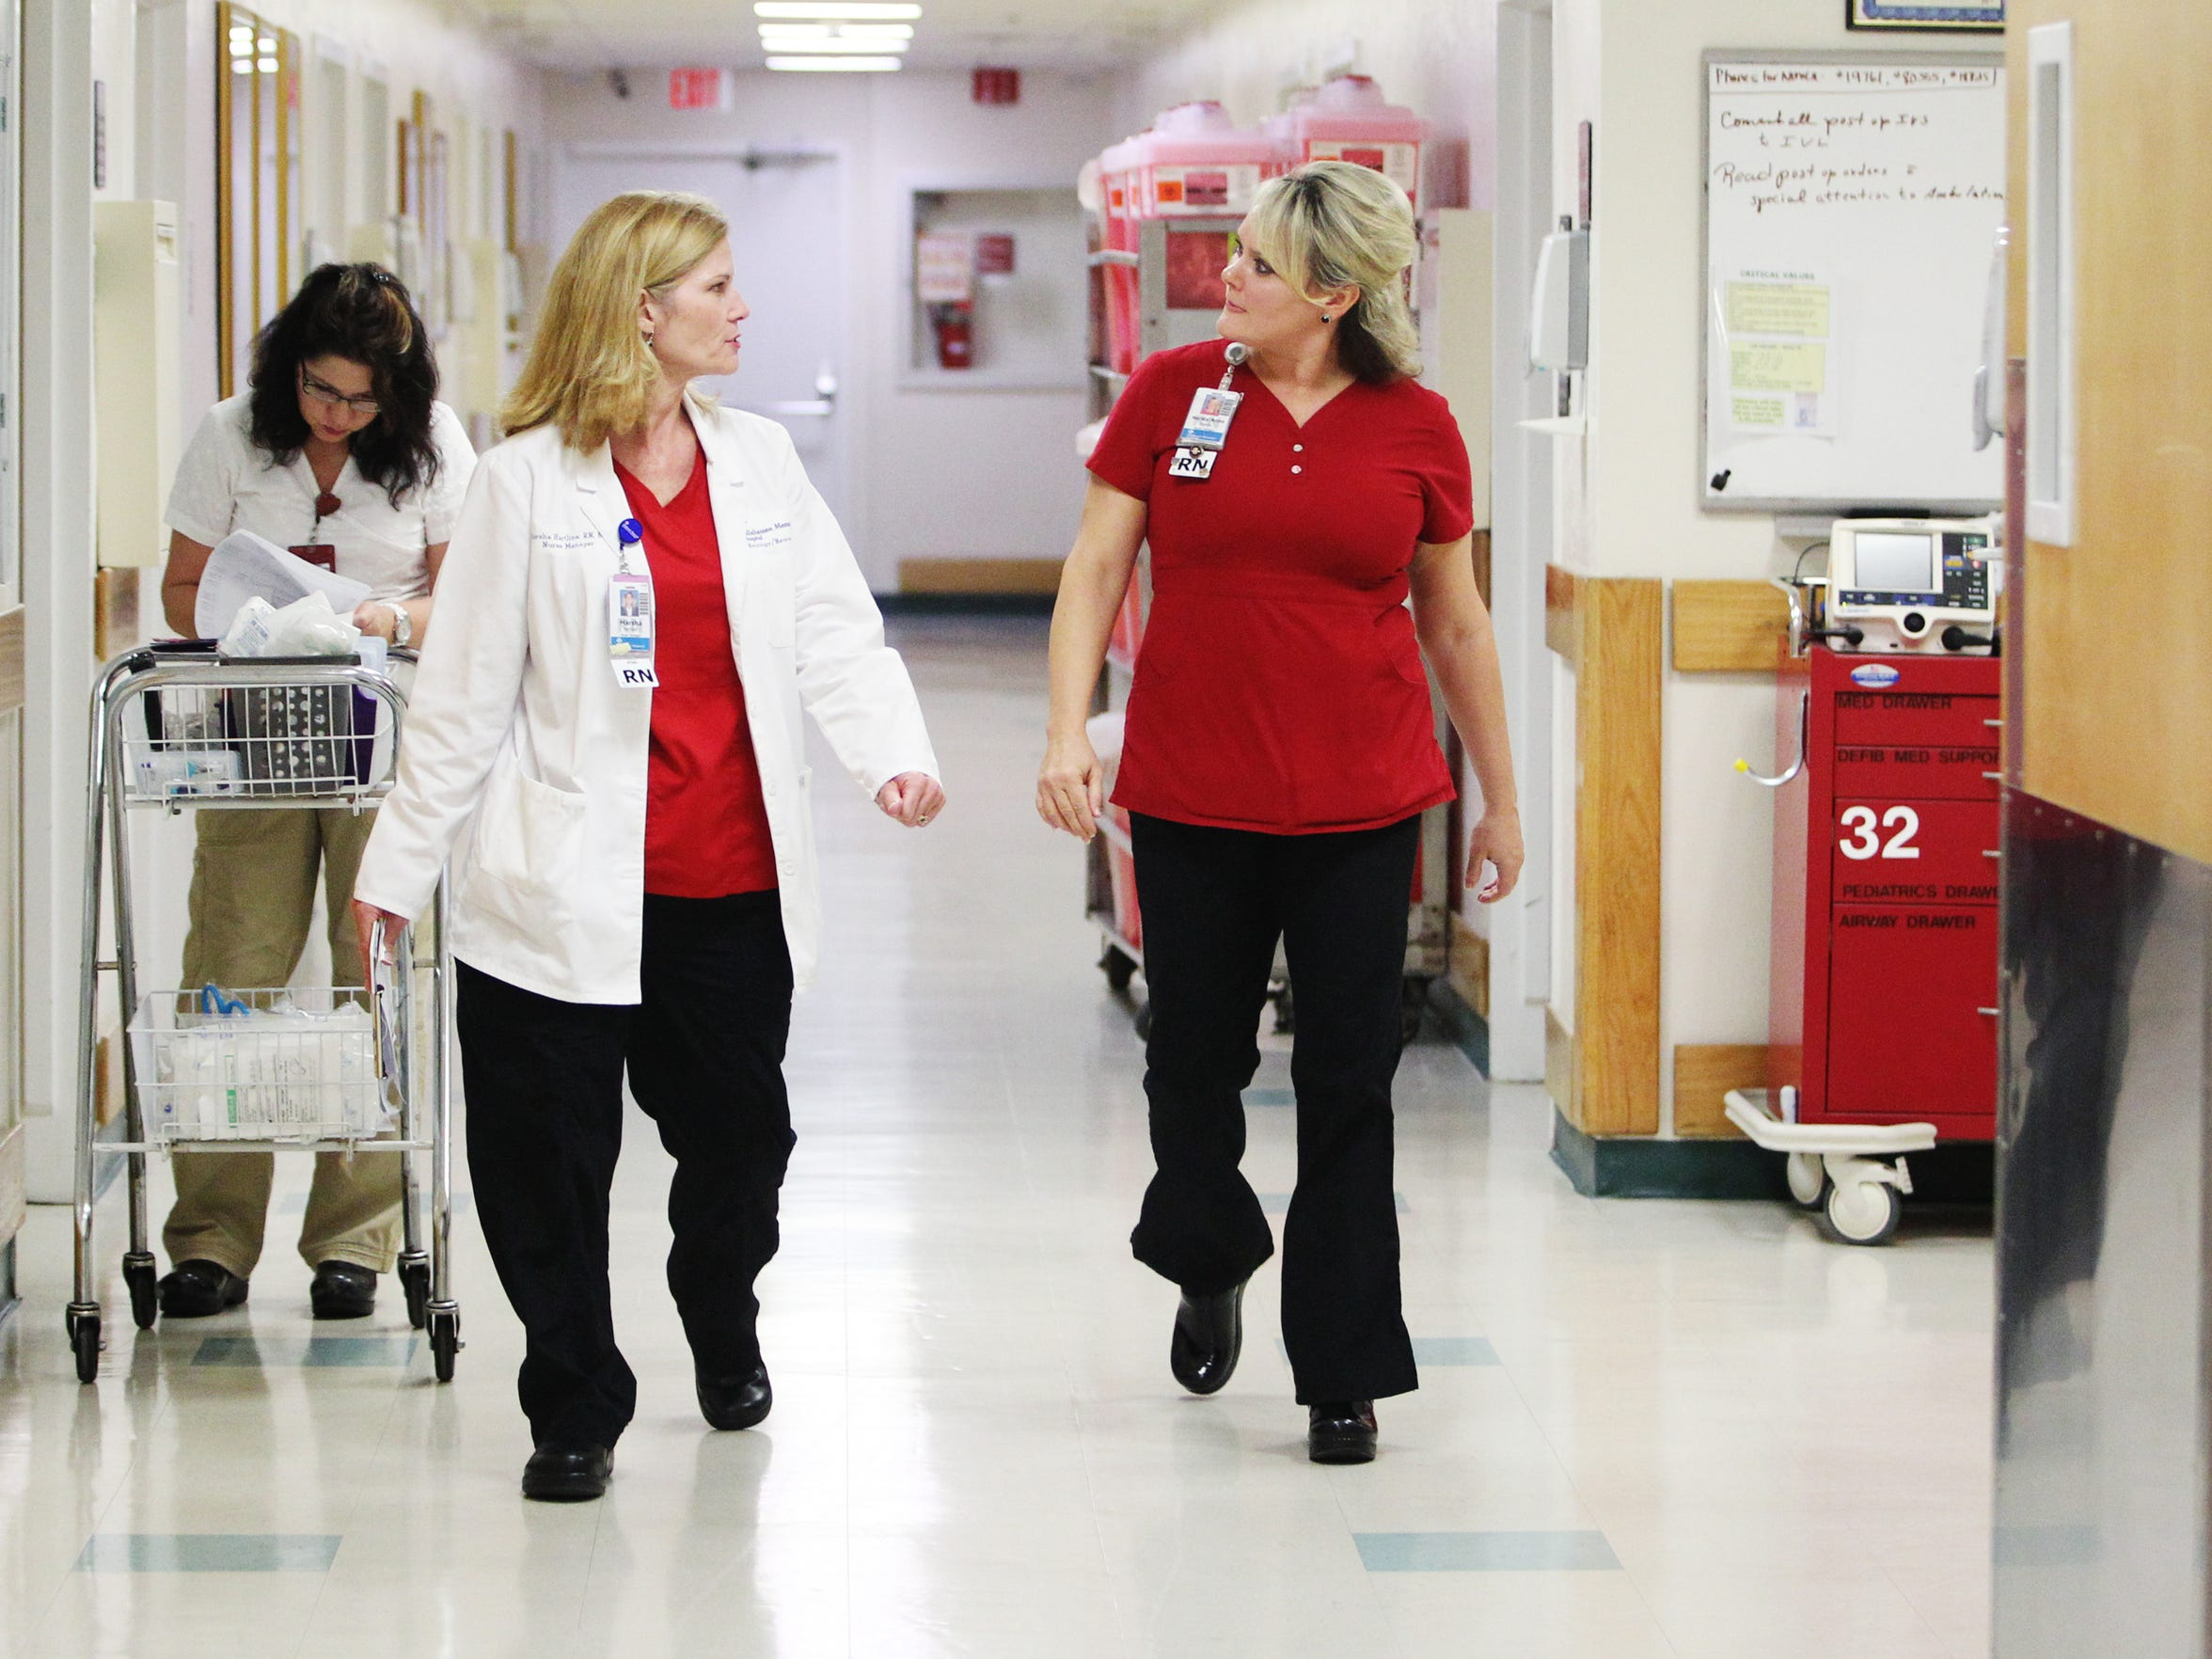 Tallahassee Memorial Hospital nurse managers Nancy Anne Teems, left, and Marsha Hardline talk . Nationally, nursing is a high-demand profession wrought with vacancies.